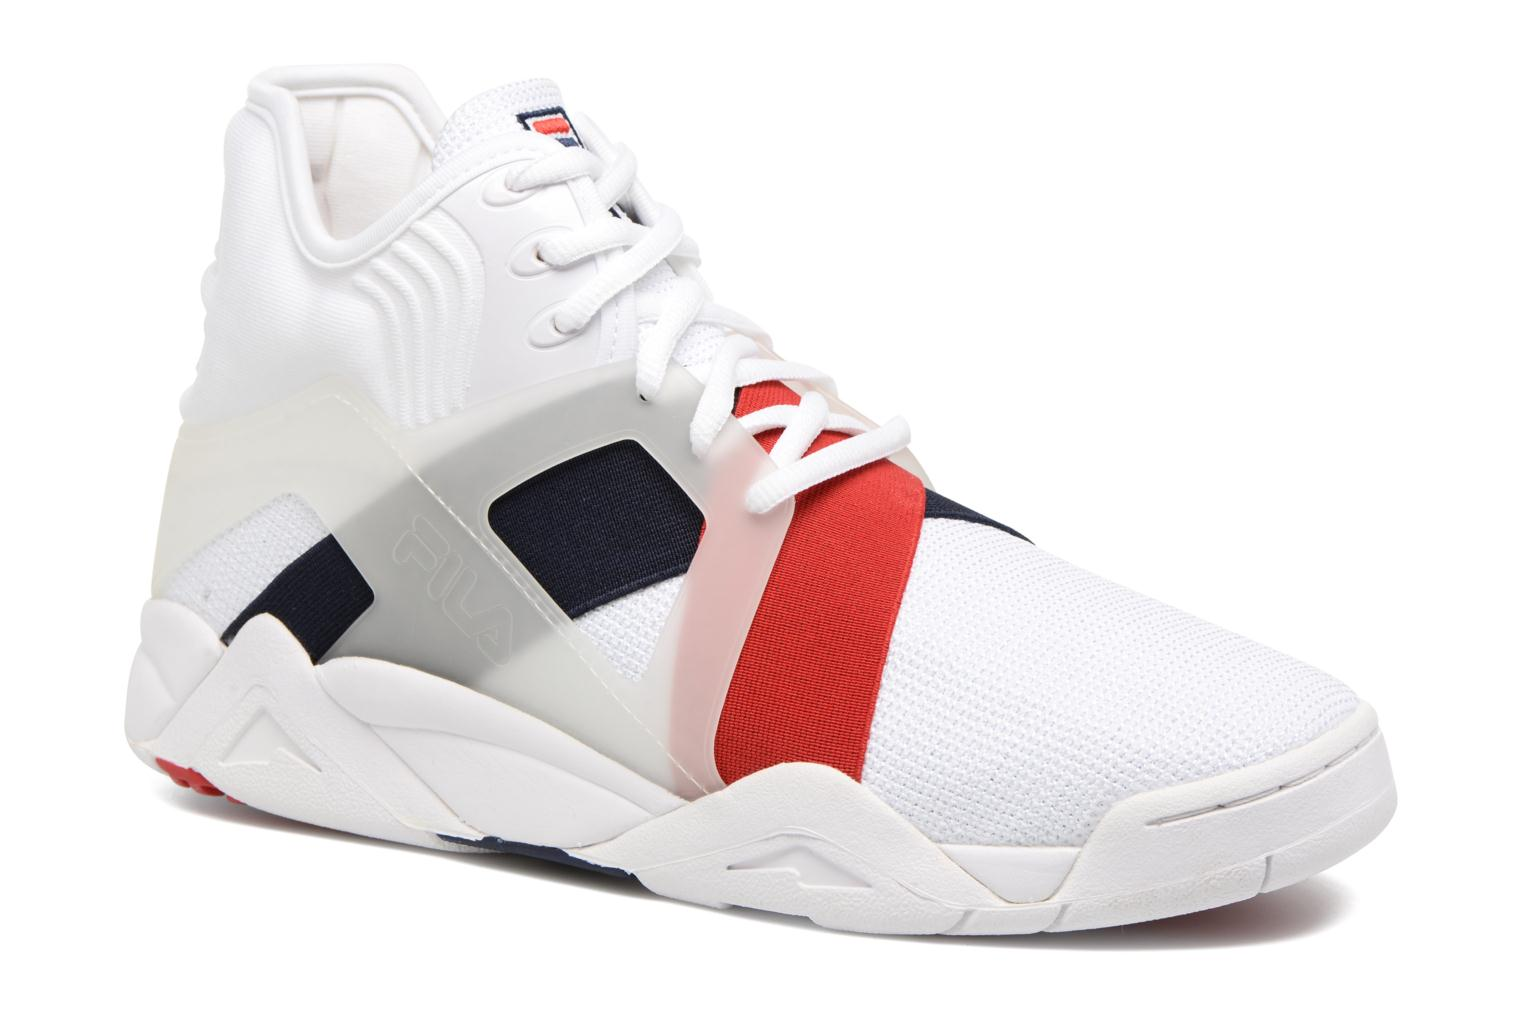 Cage 17 by FILA